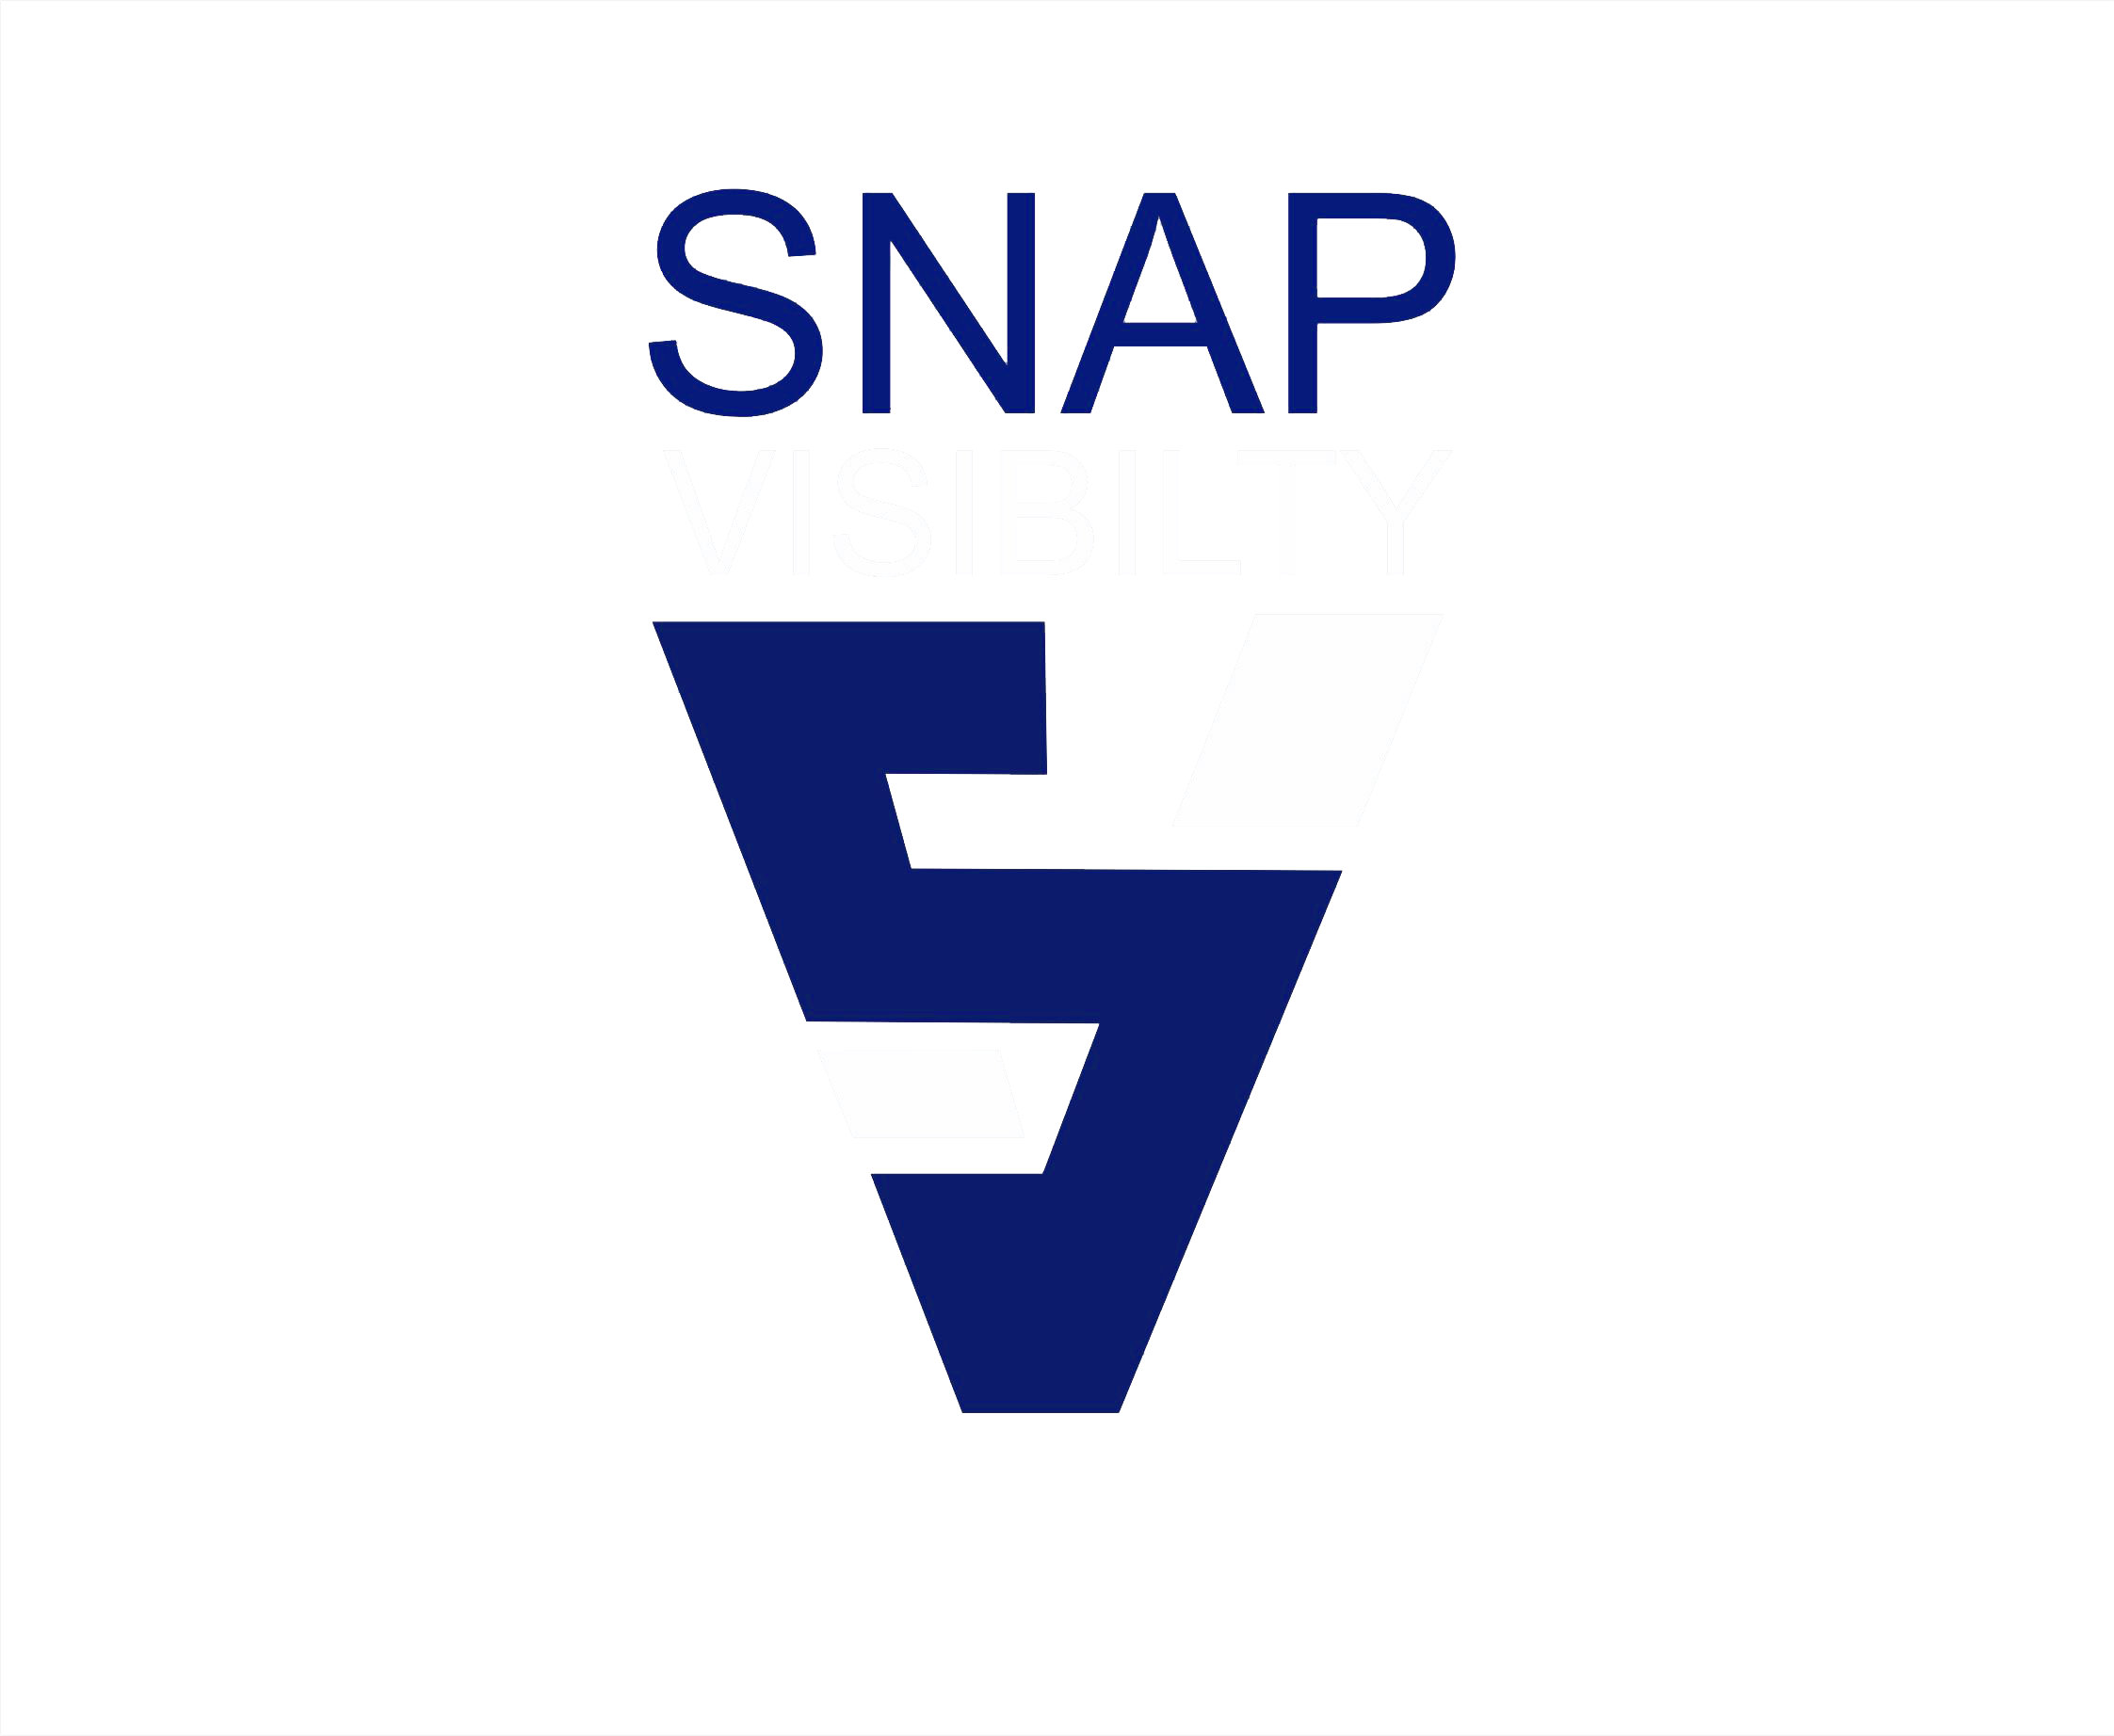 Snap Visibility